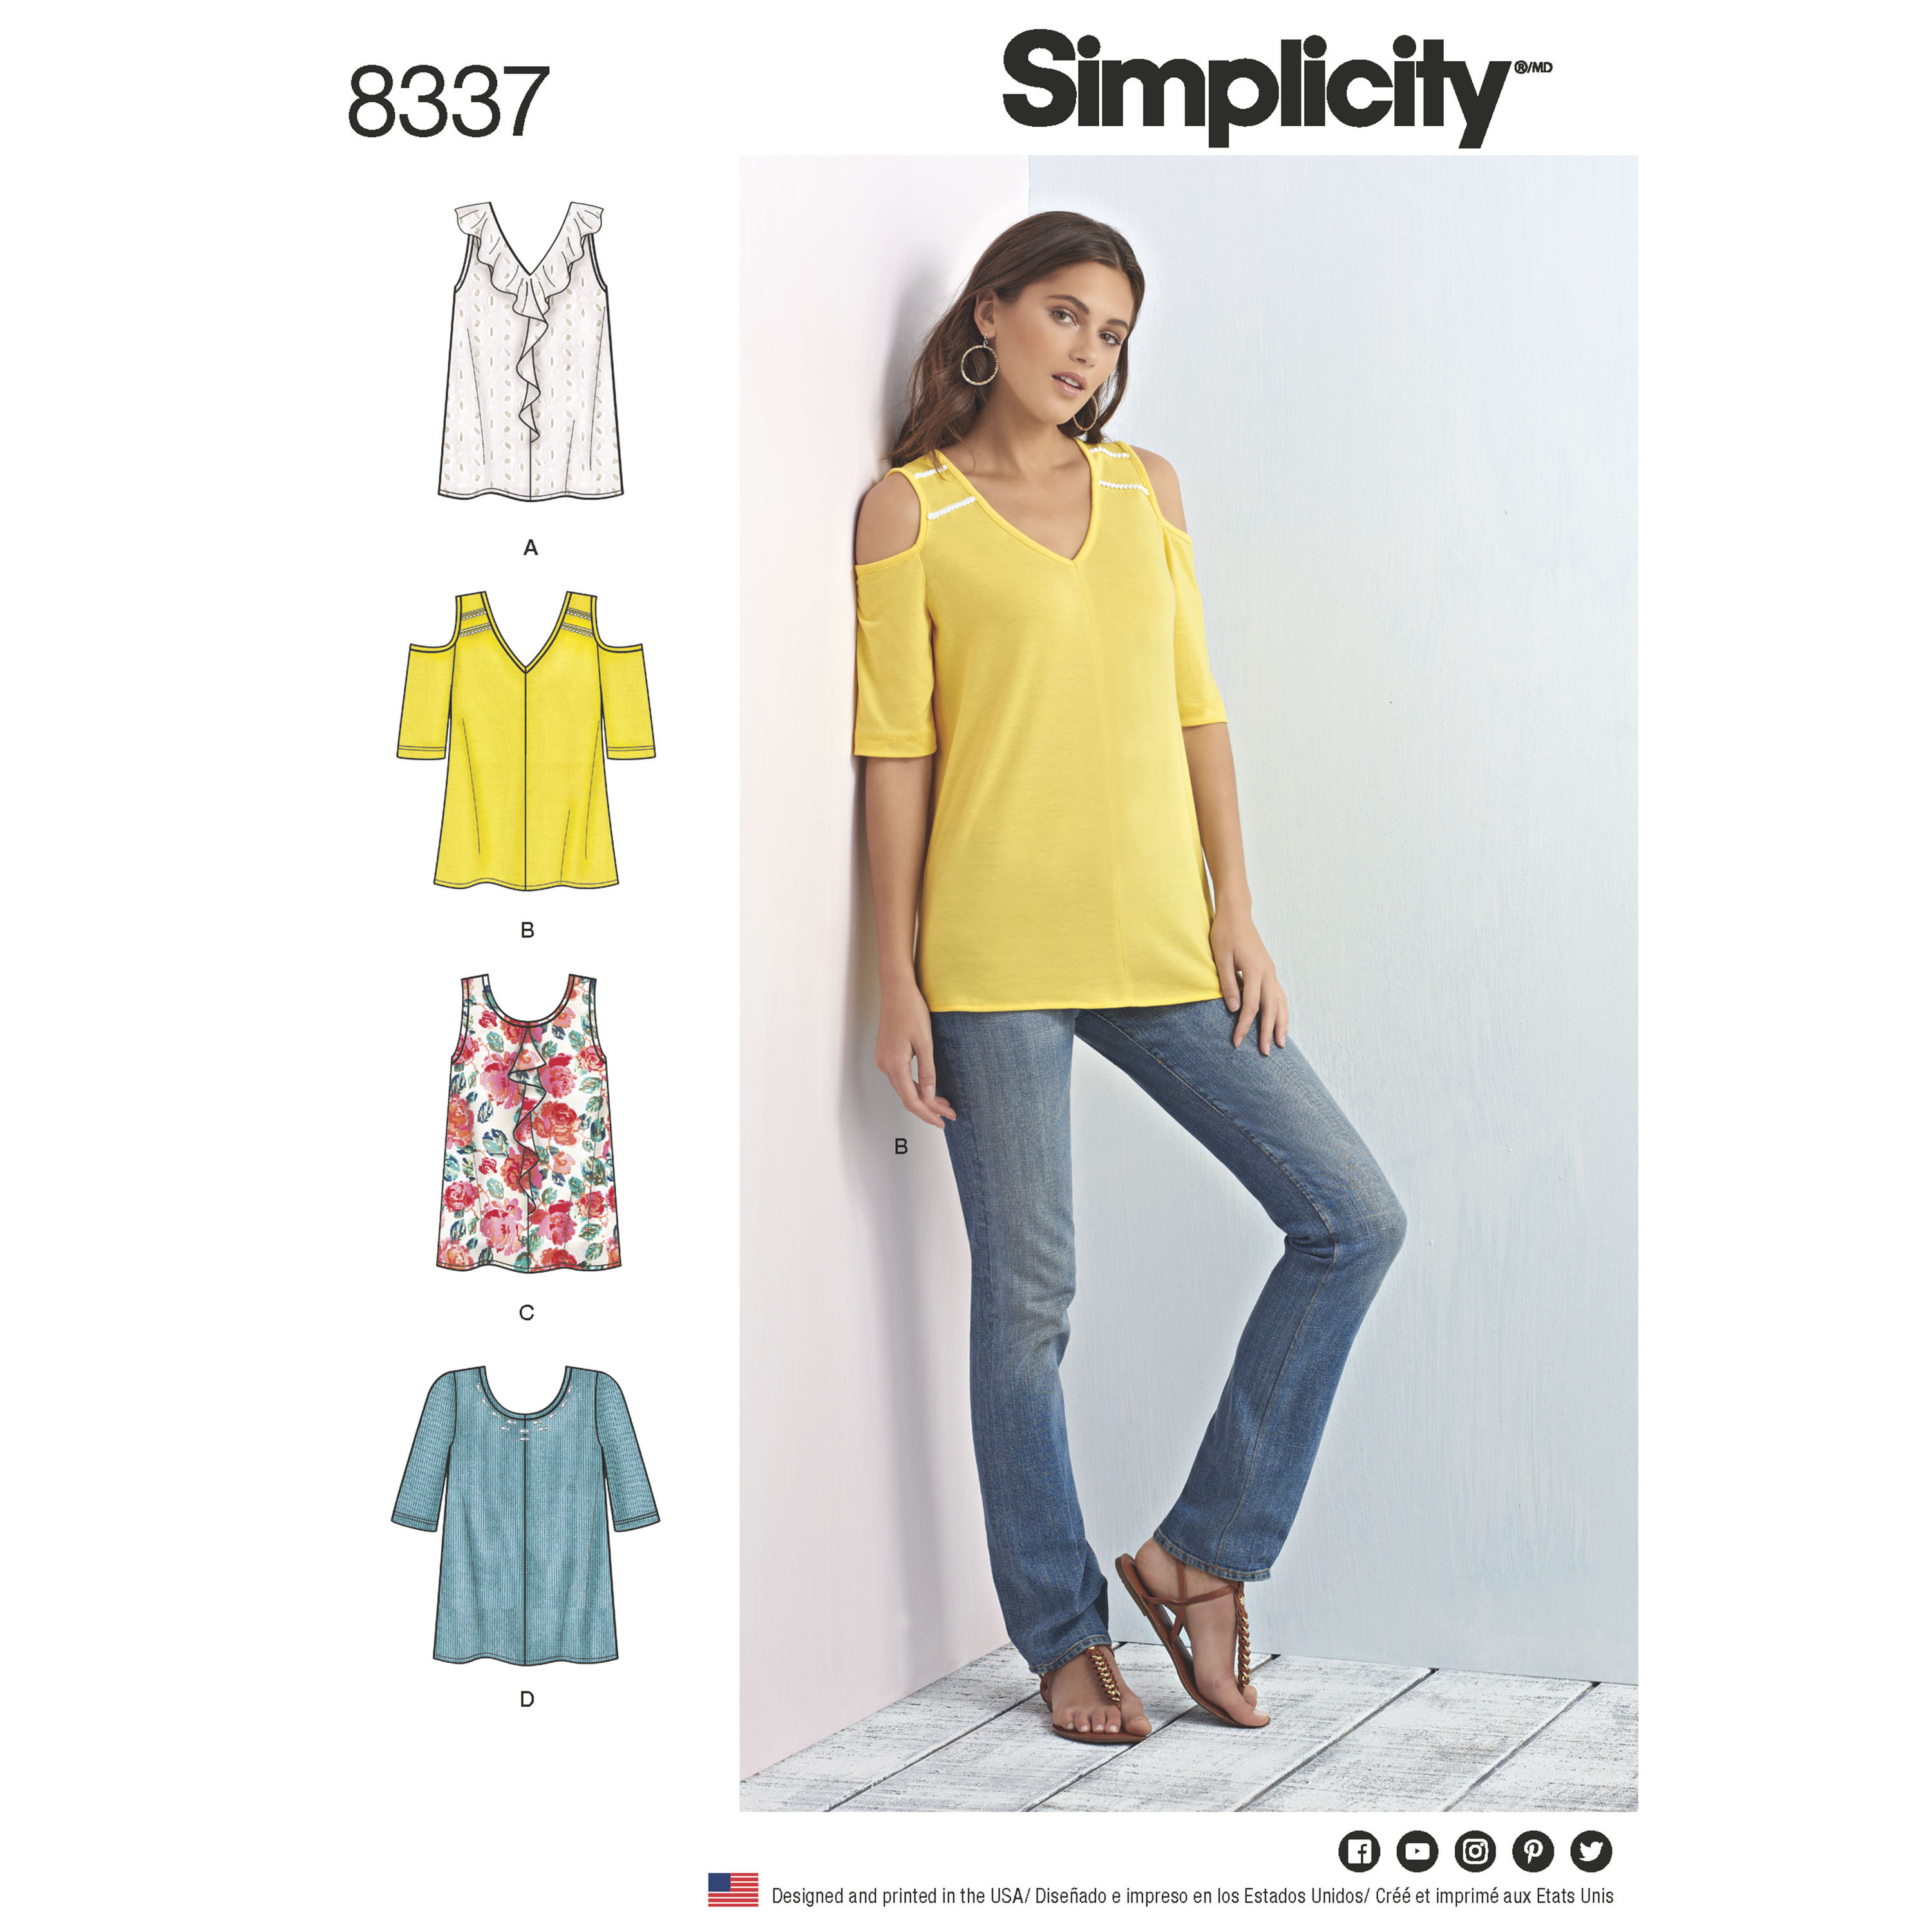 e1ca8af2c6fa Simplicity Pattern 8337 Womens Knit Tops with Bodice and Sleeve ...